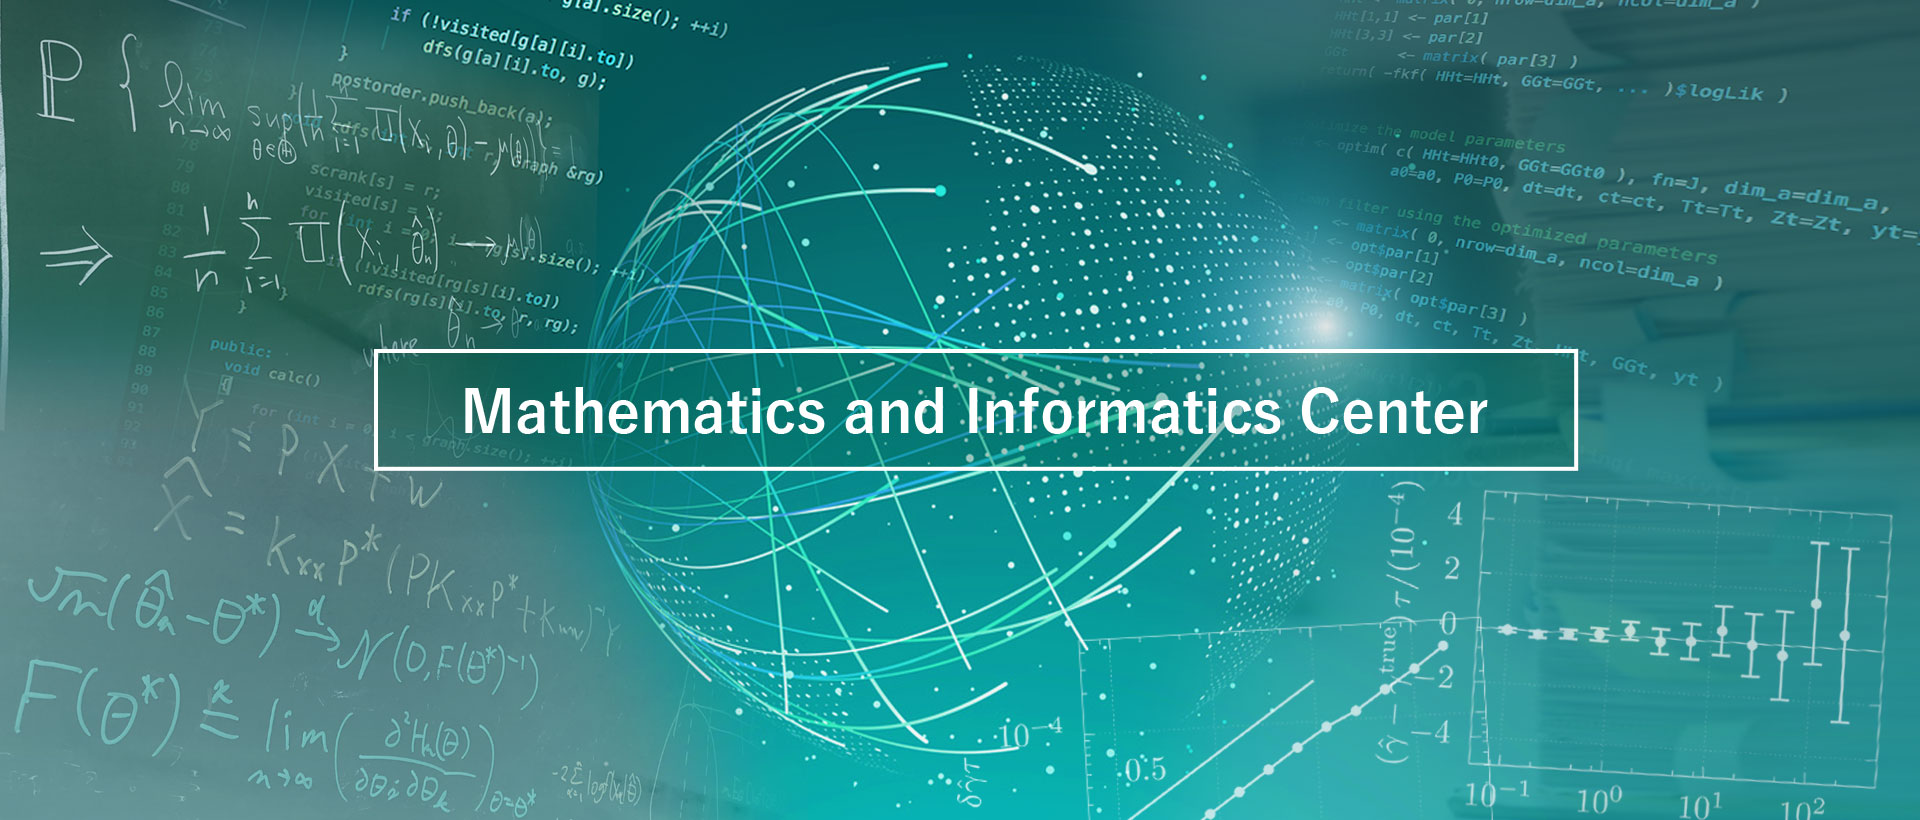 Mathematics and Informatics Center